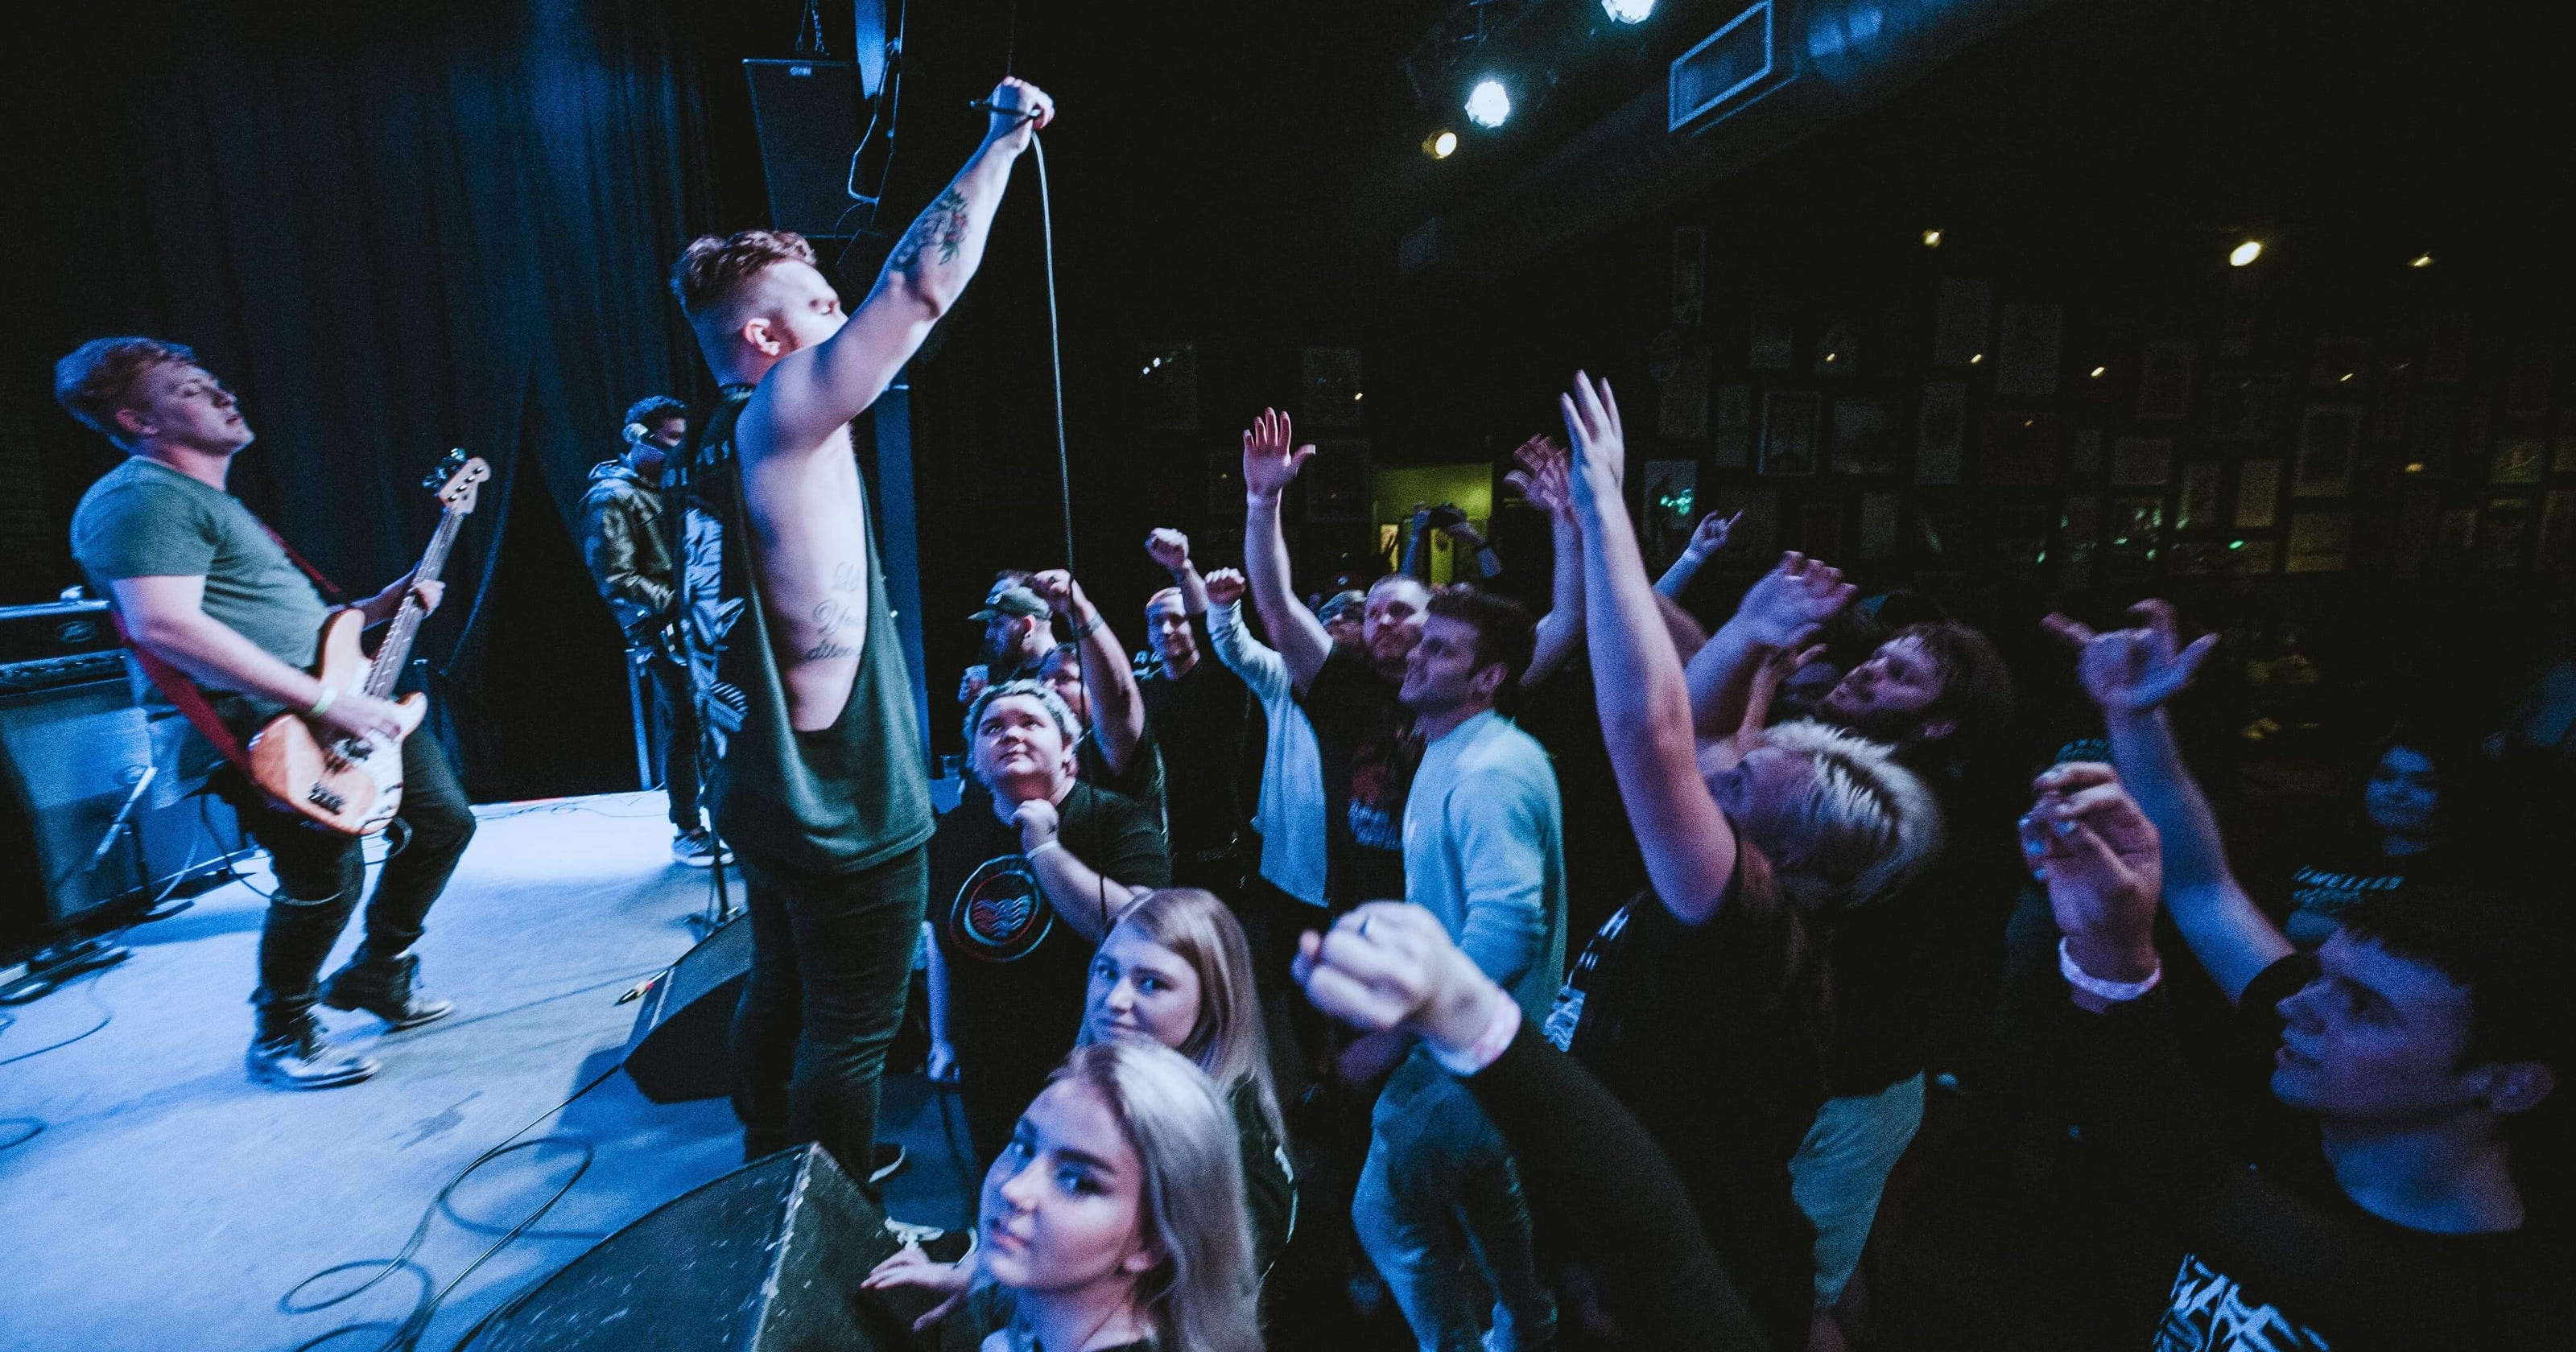 Sioux Falls rock bands and music groups you need to listen to now